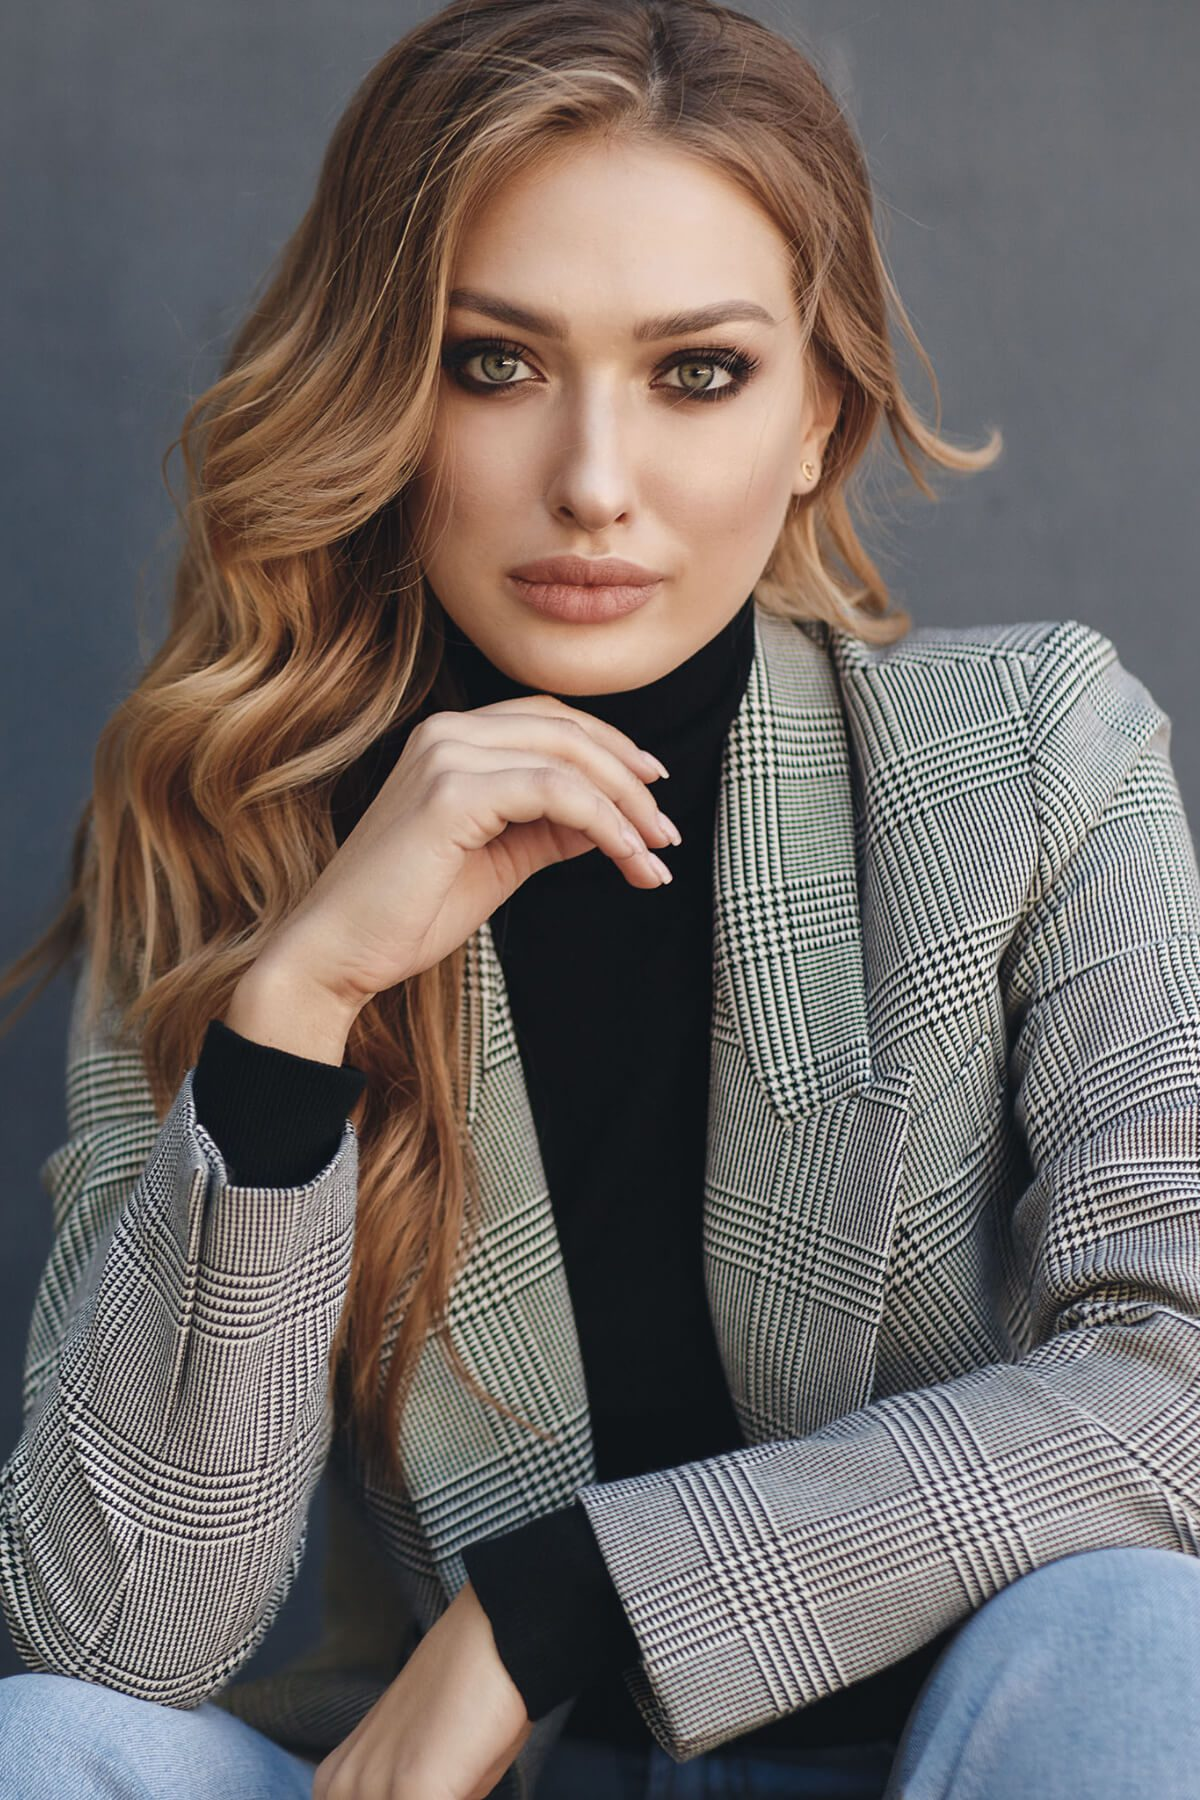 Sunday Salon: Portrait of beautiful woman with long curly blonde hair outdoors in spring. Young woman with natural makeup in a gray jacket . A smart photo of a young beautiful woman in autumn clothes.